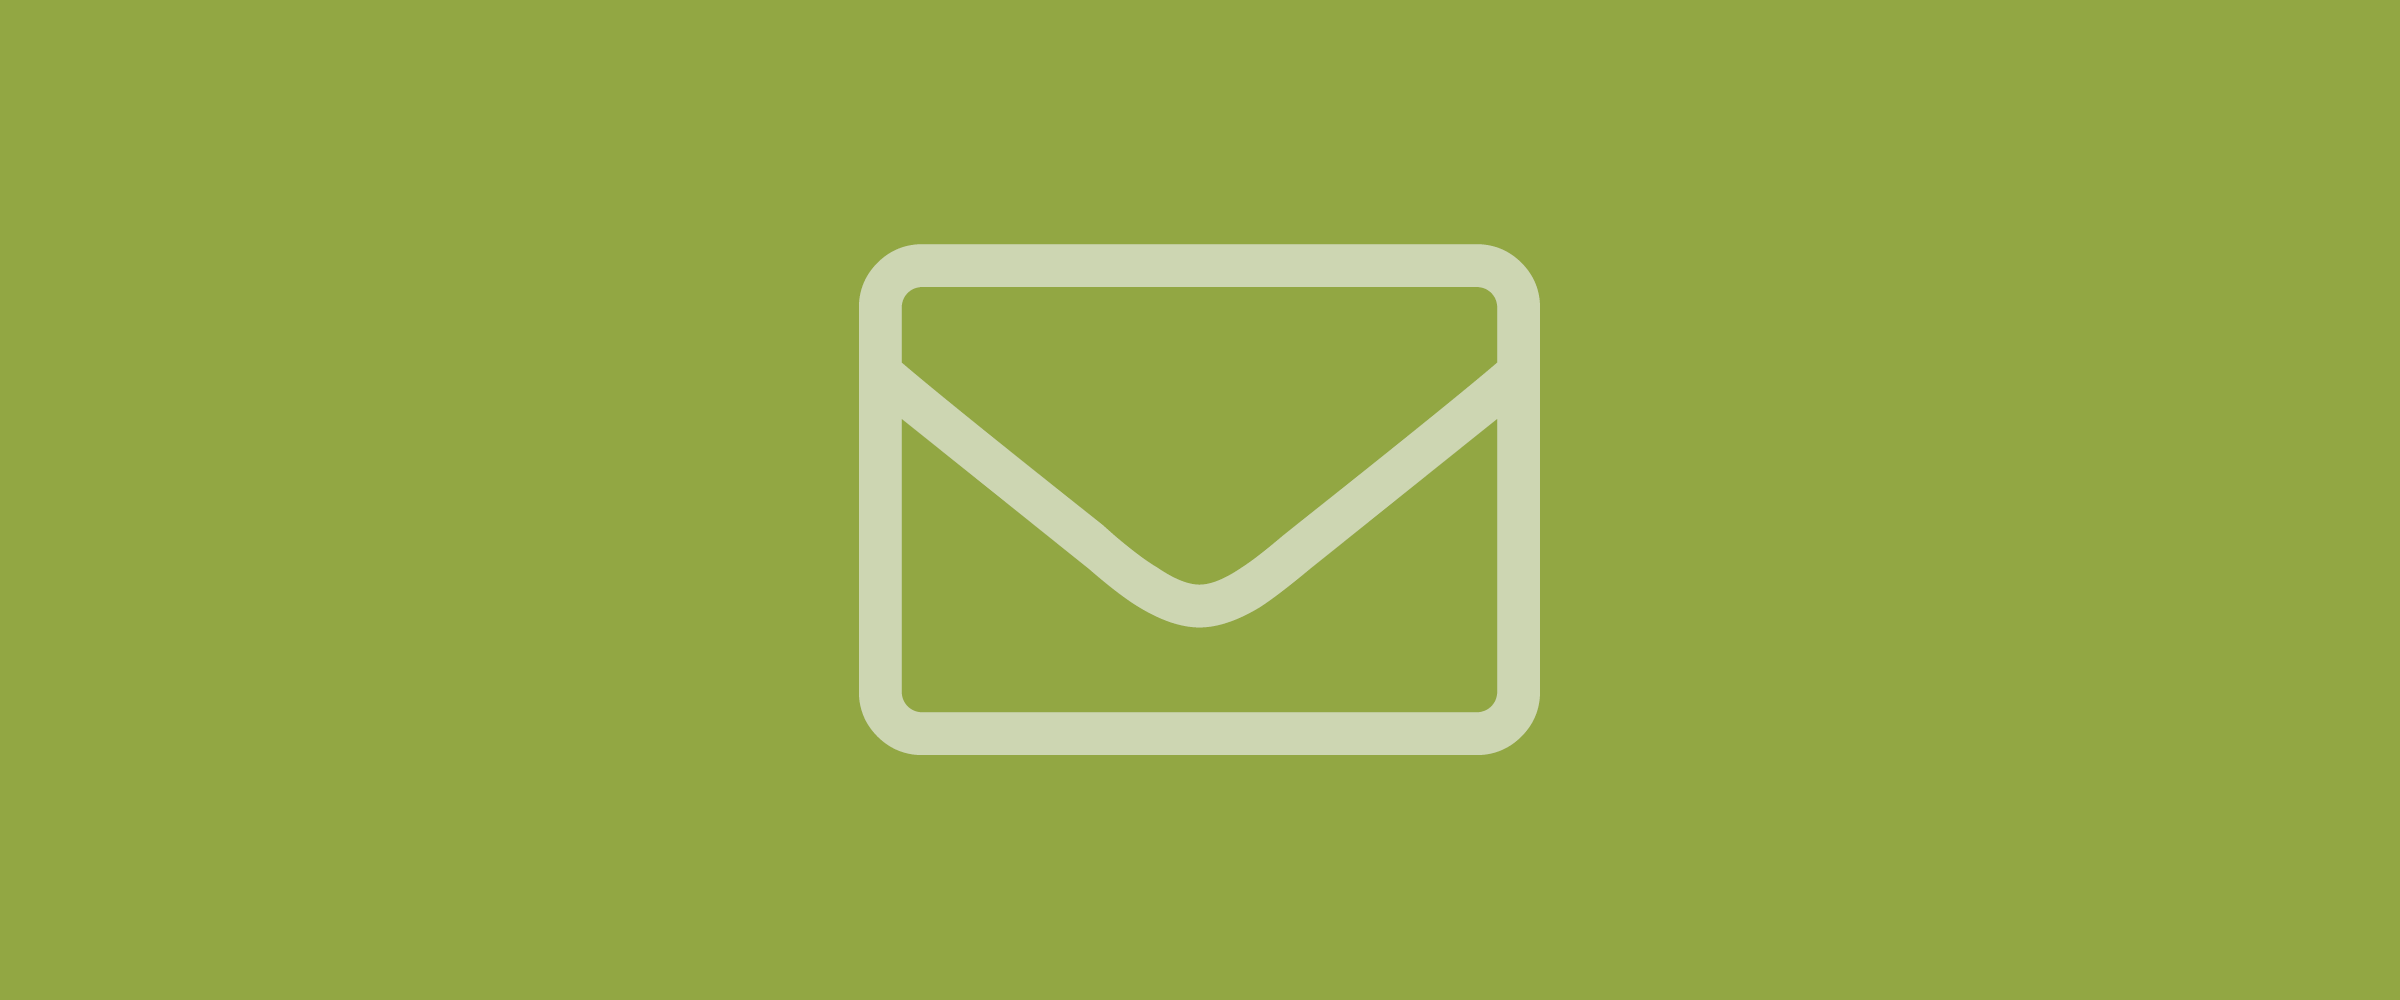 newsletter icon.png